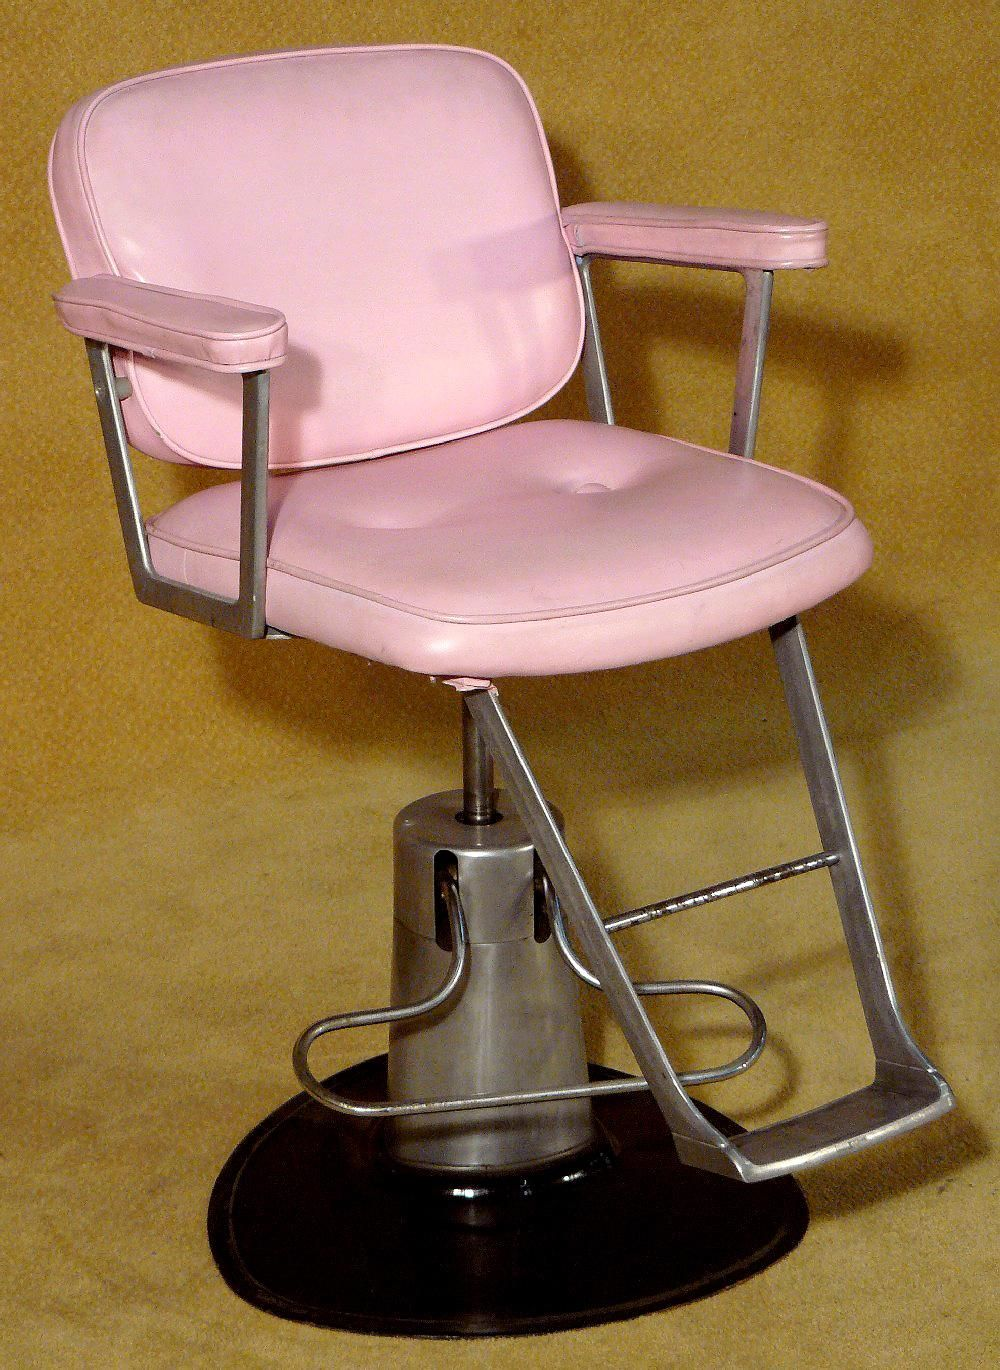 Vintage Beauty Salon Chair Pink X2 Vintage salon, Salon